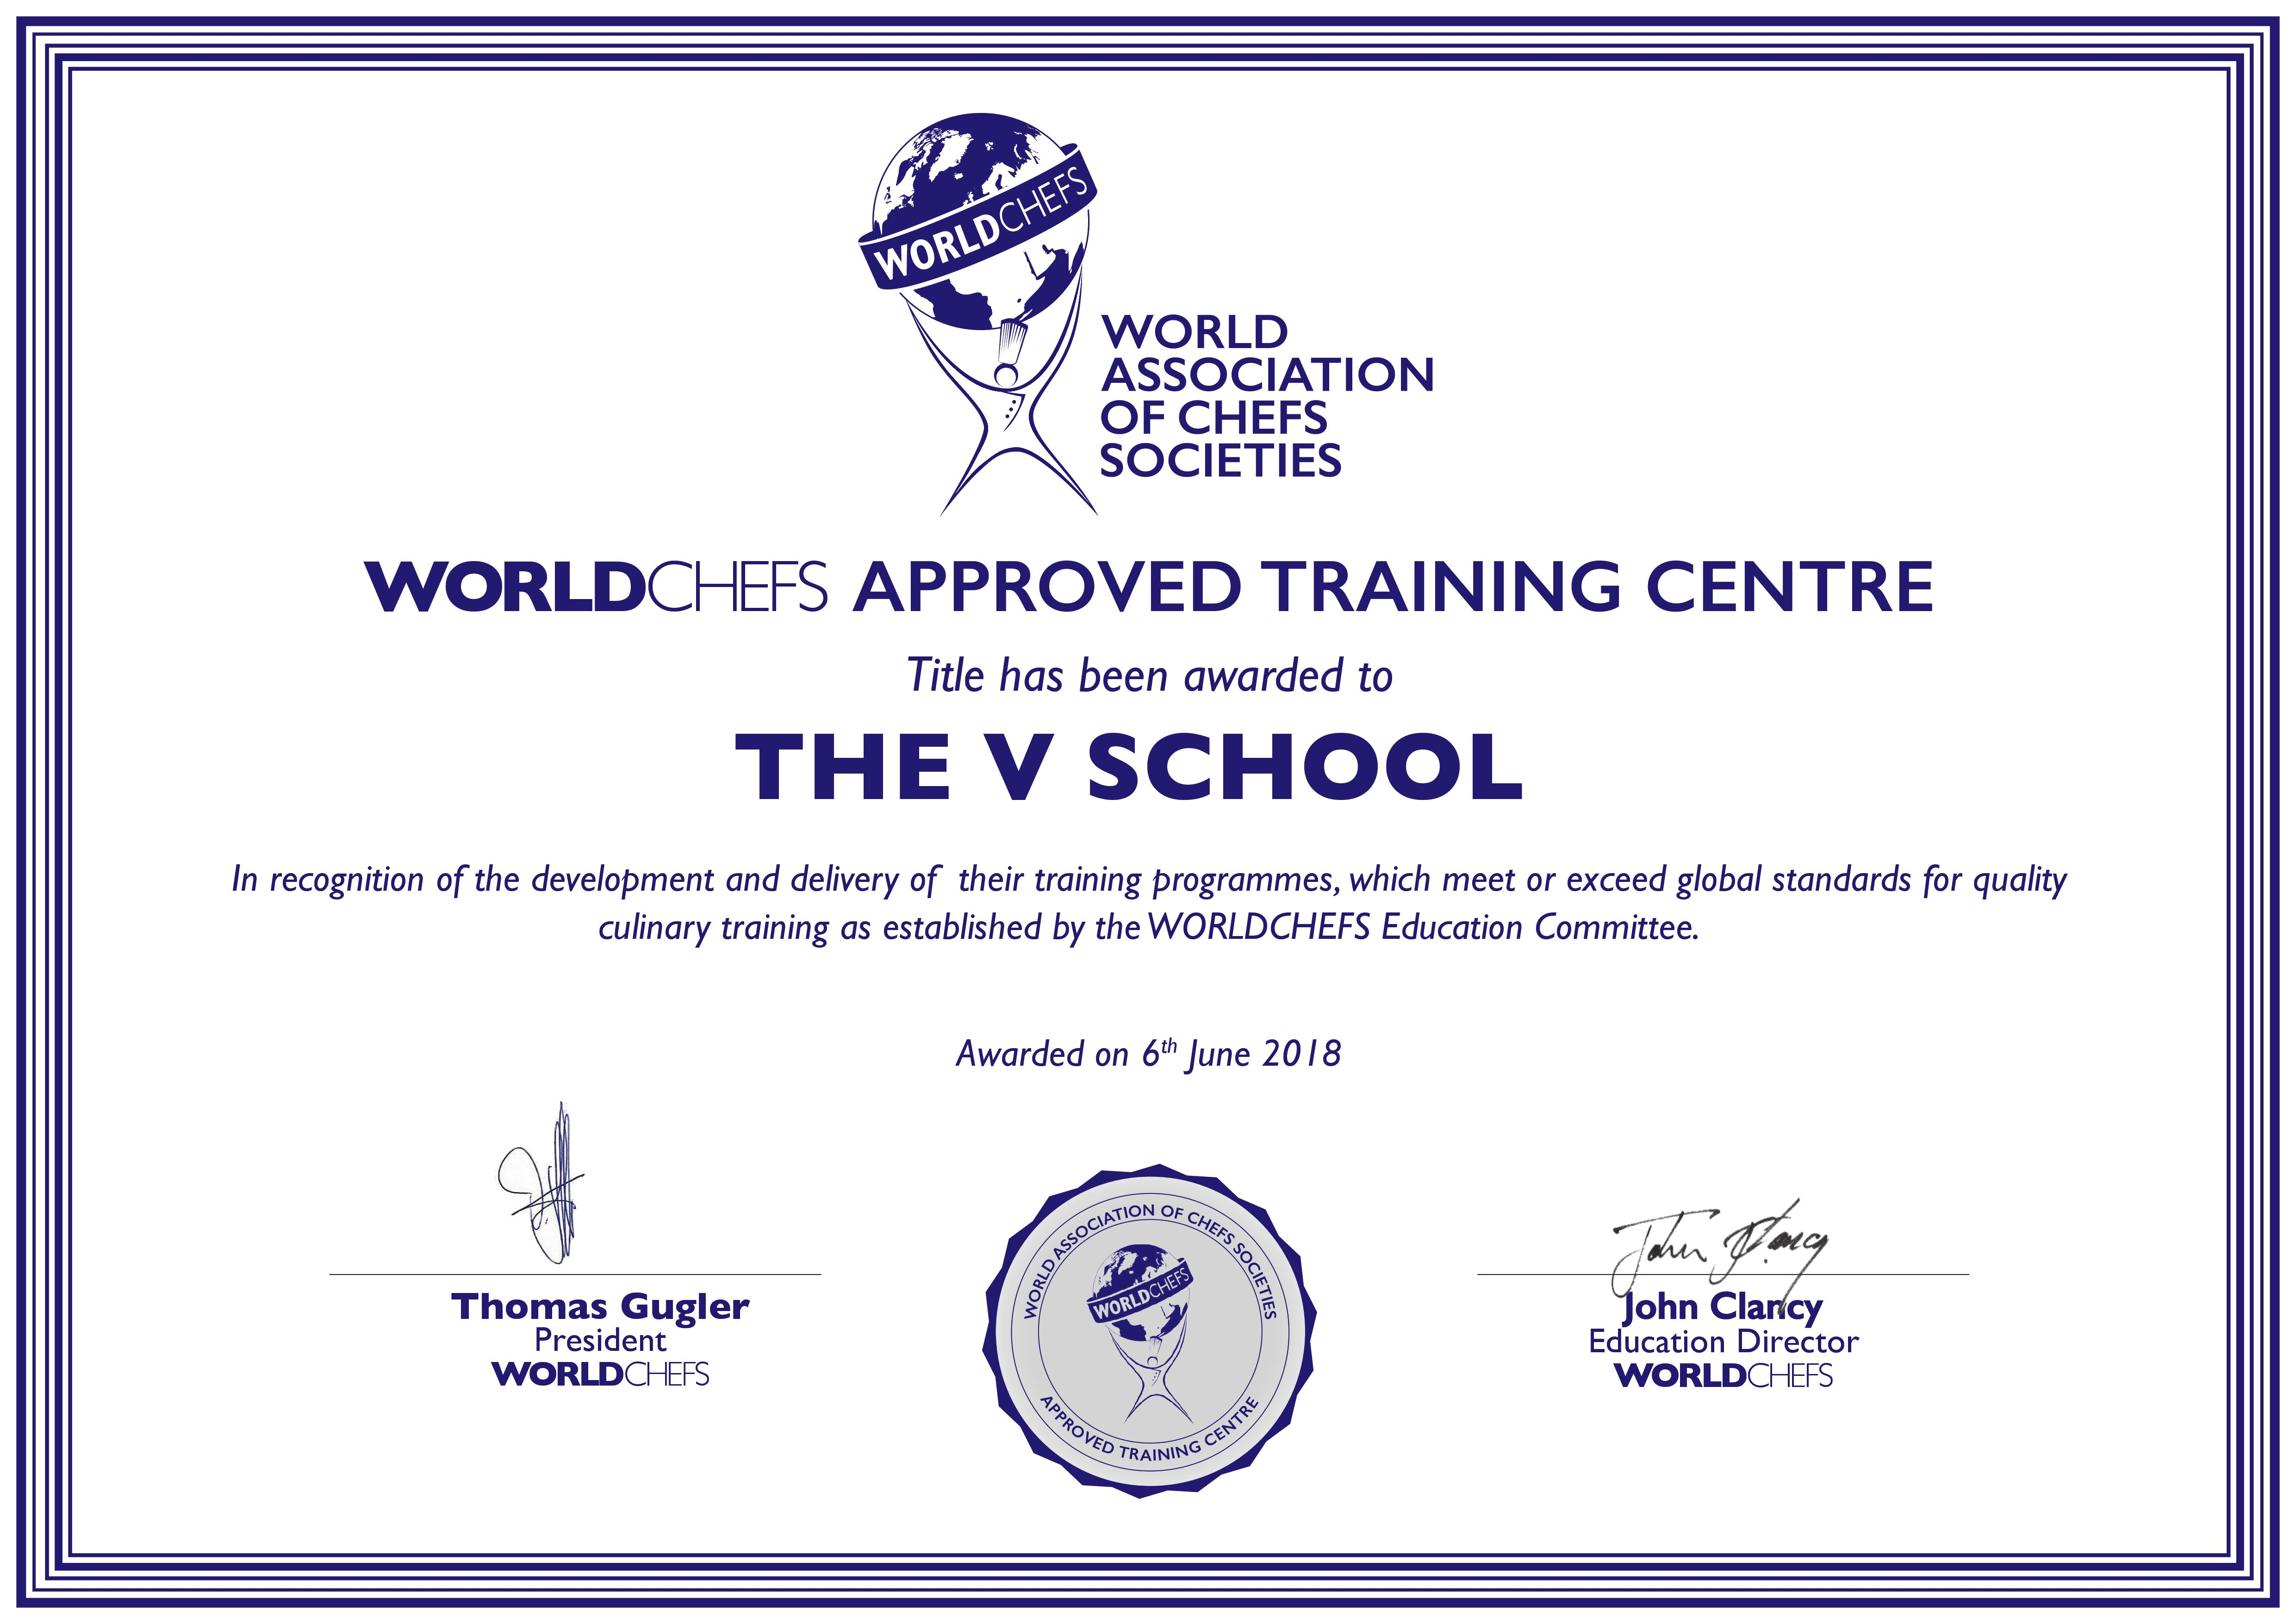 WorldChefs Approved Training Centre